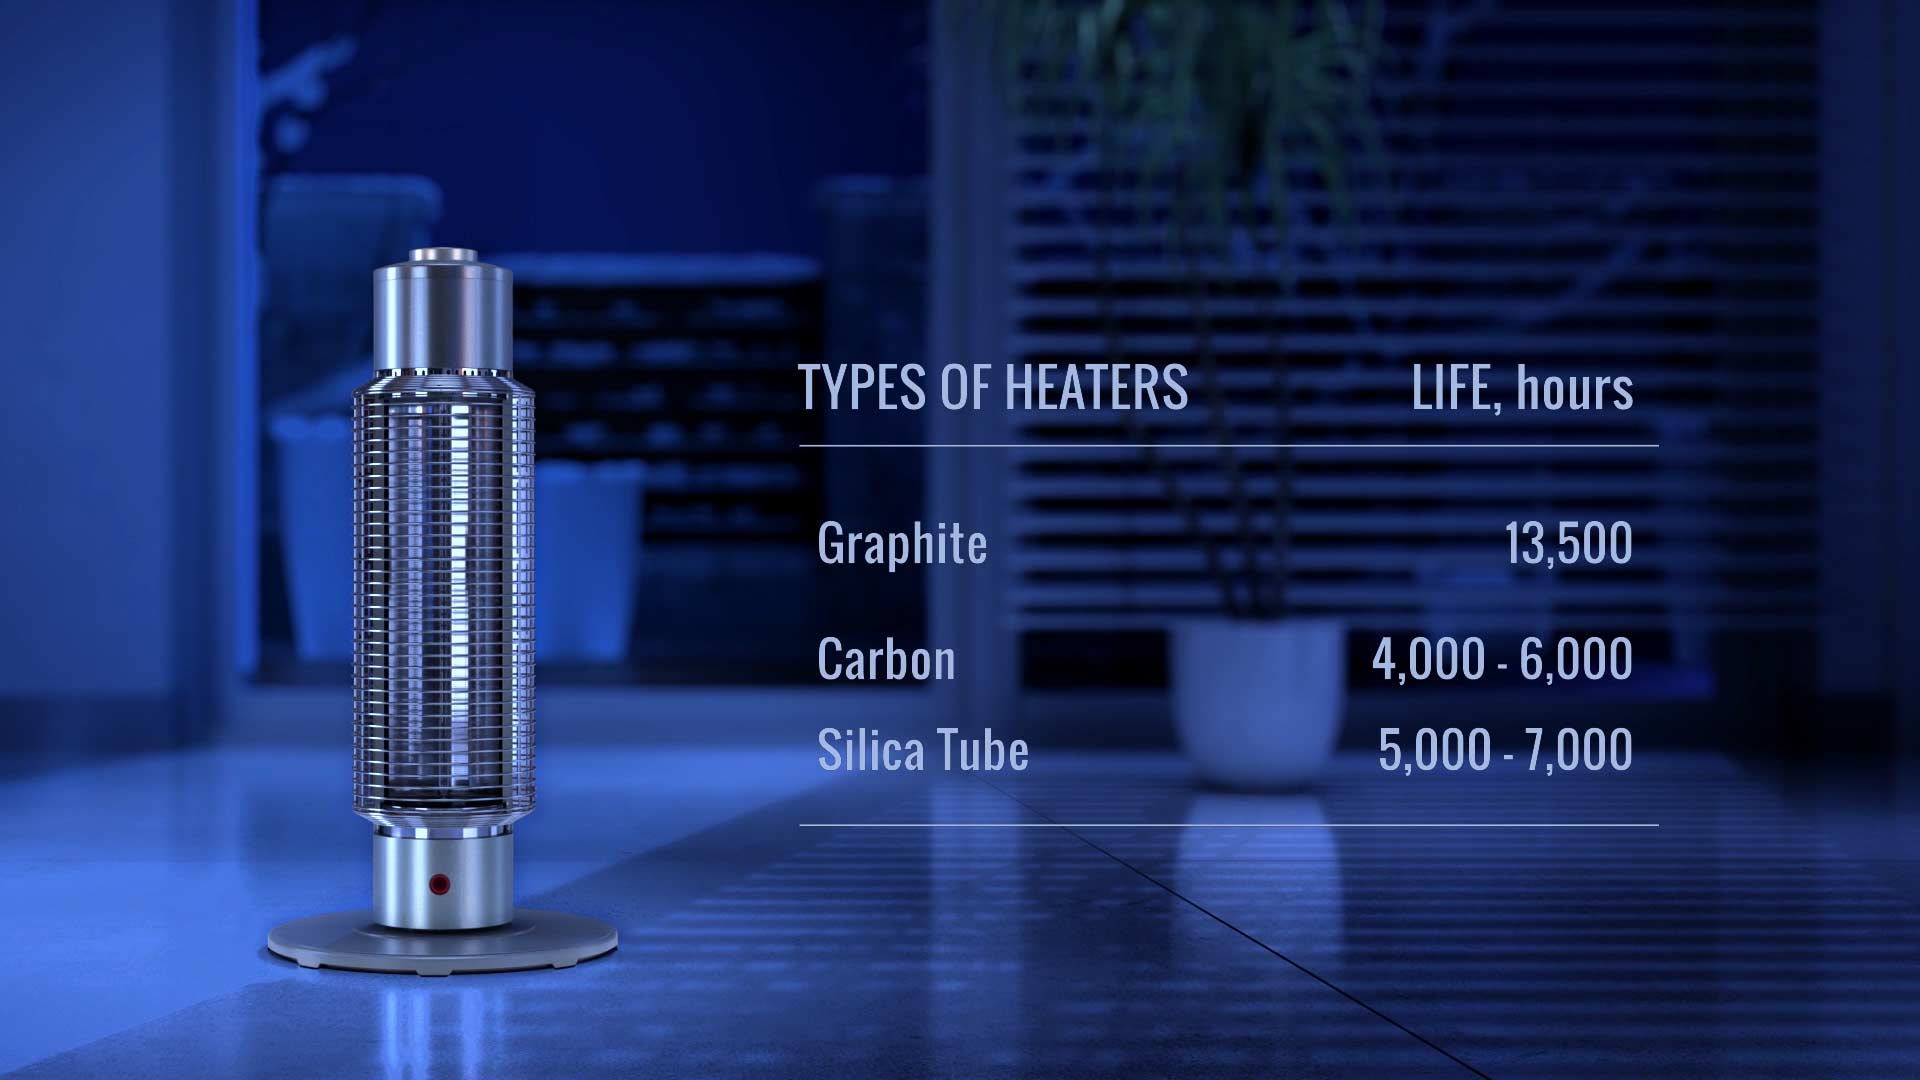 Electric-Heaters-video-background-still-3-mega